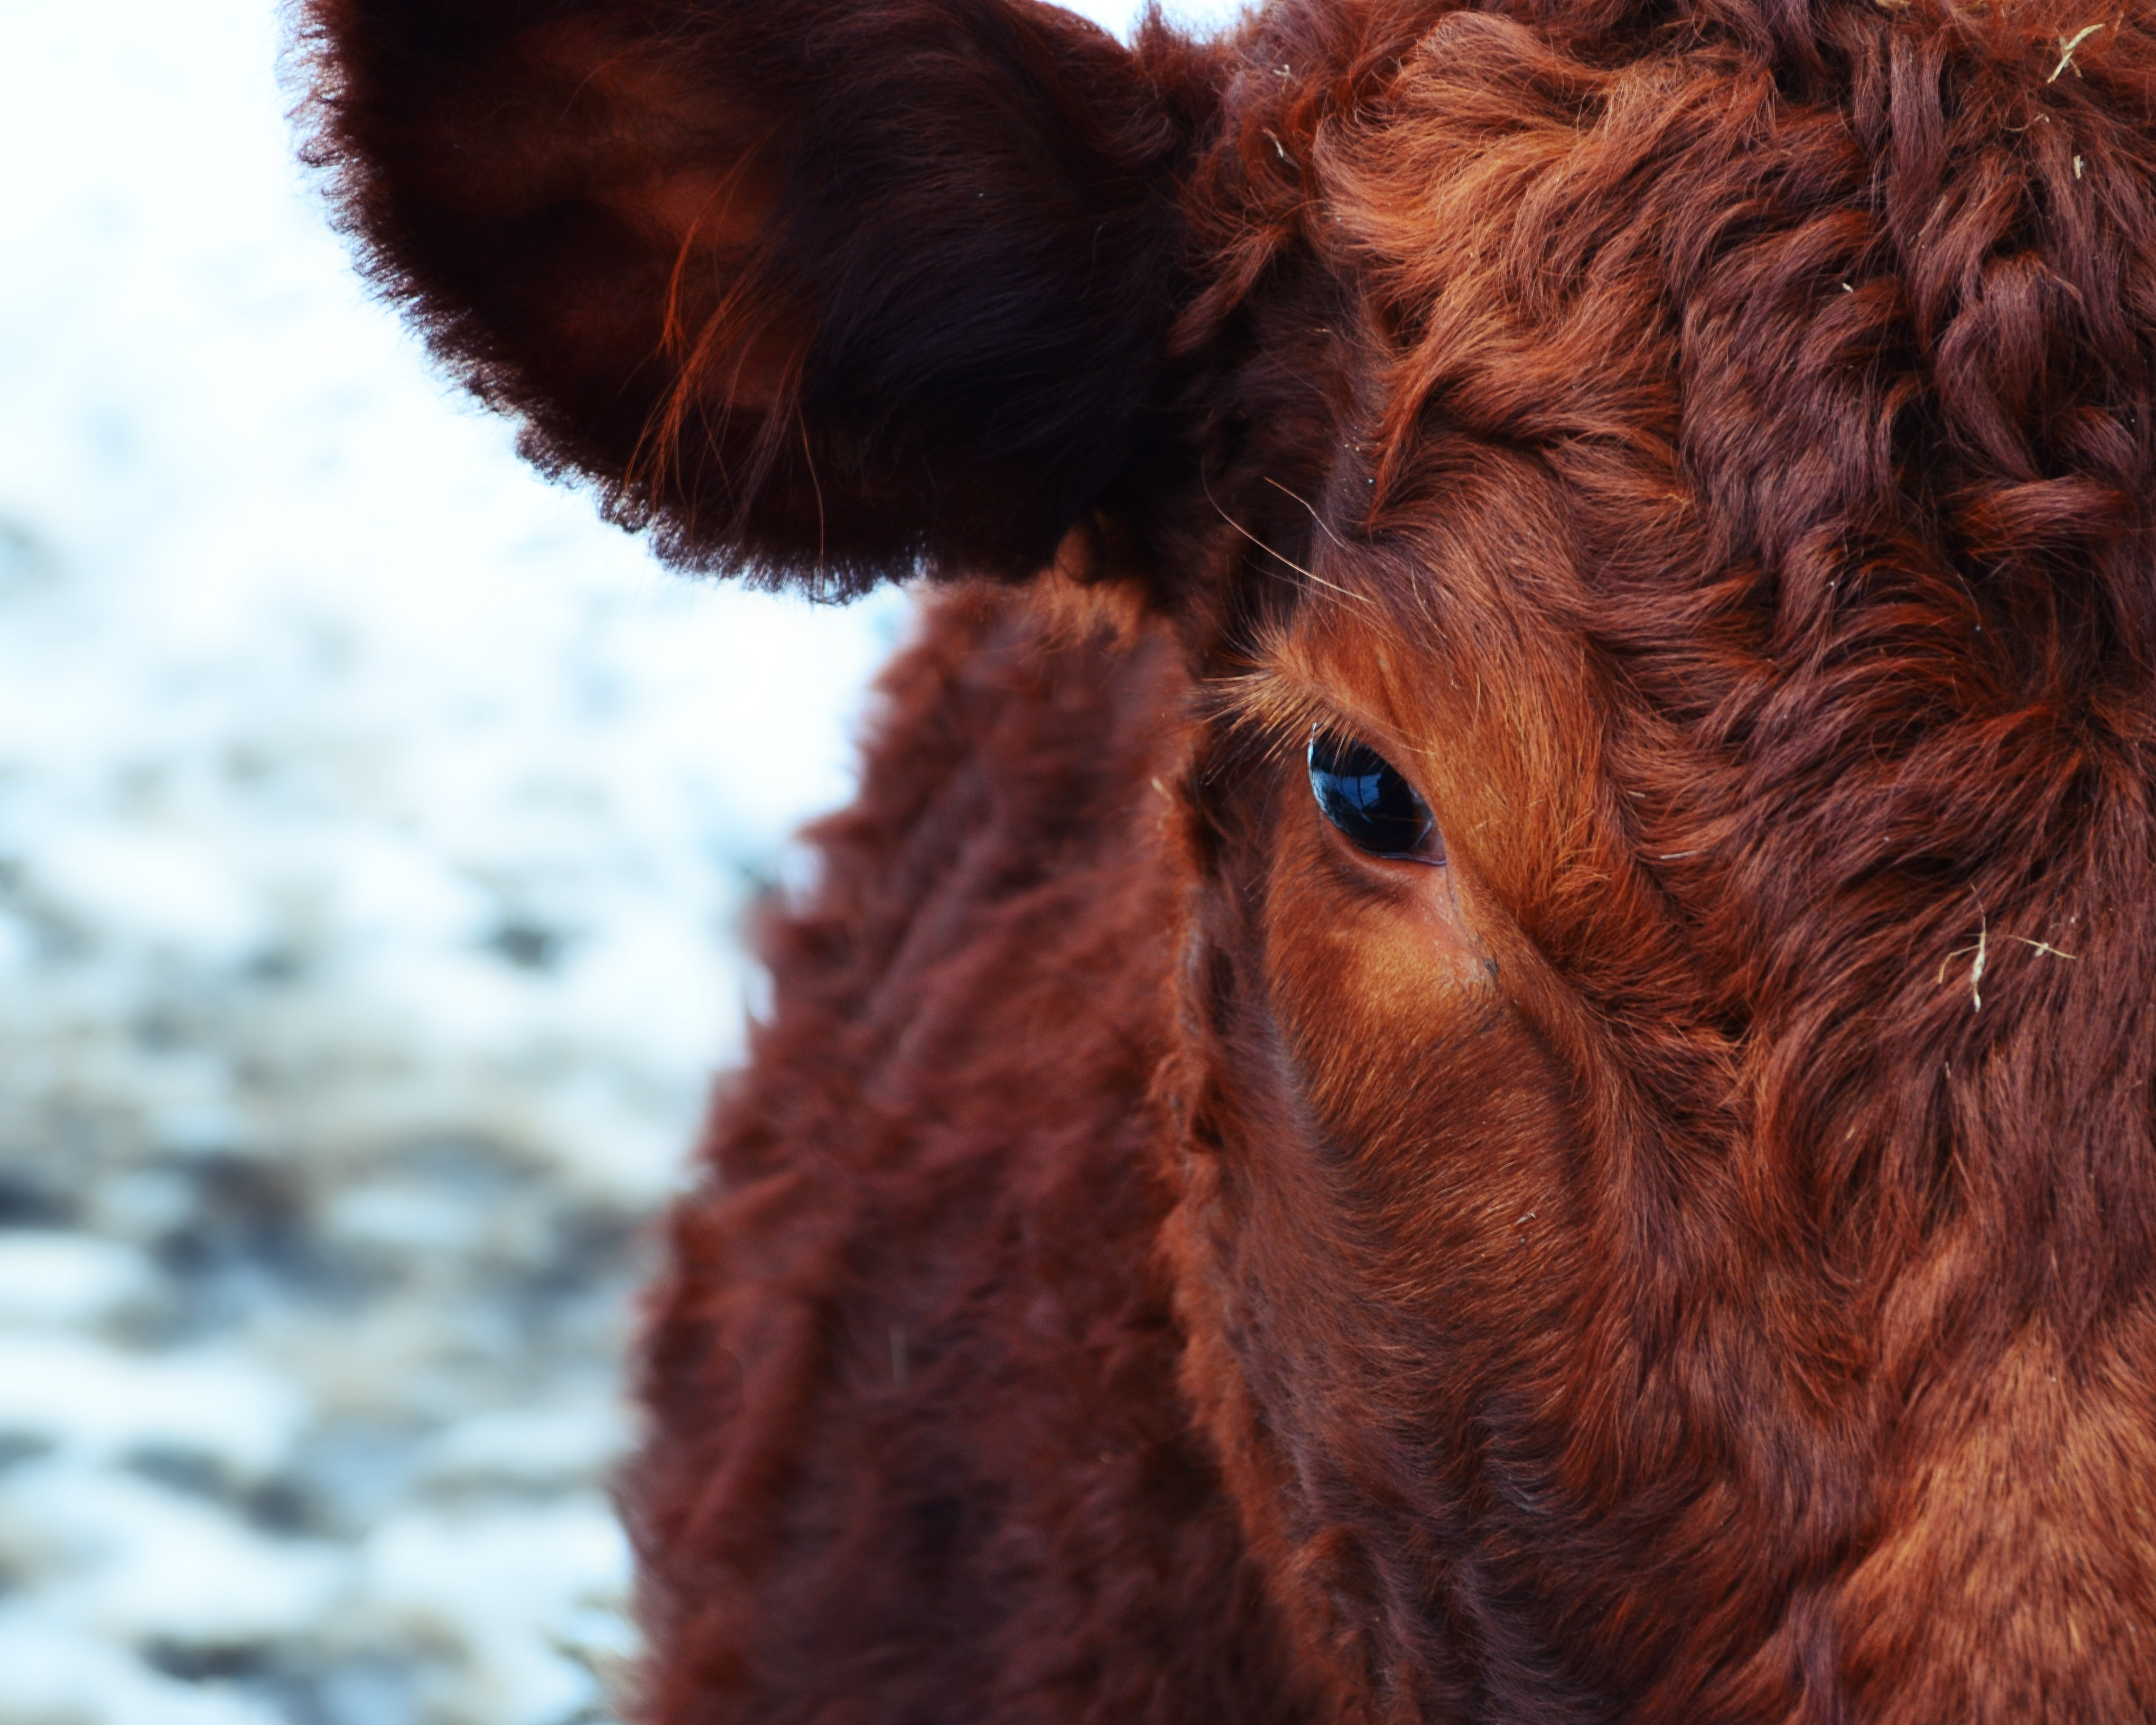 57089 download wallpaper Animals, Cow, Muzzle, Eyes, Wool screensavers and pictures for free